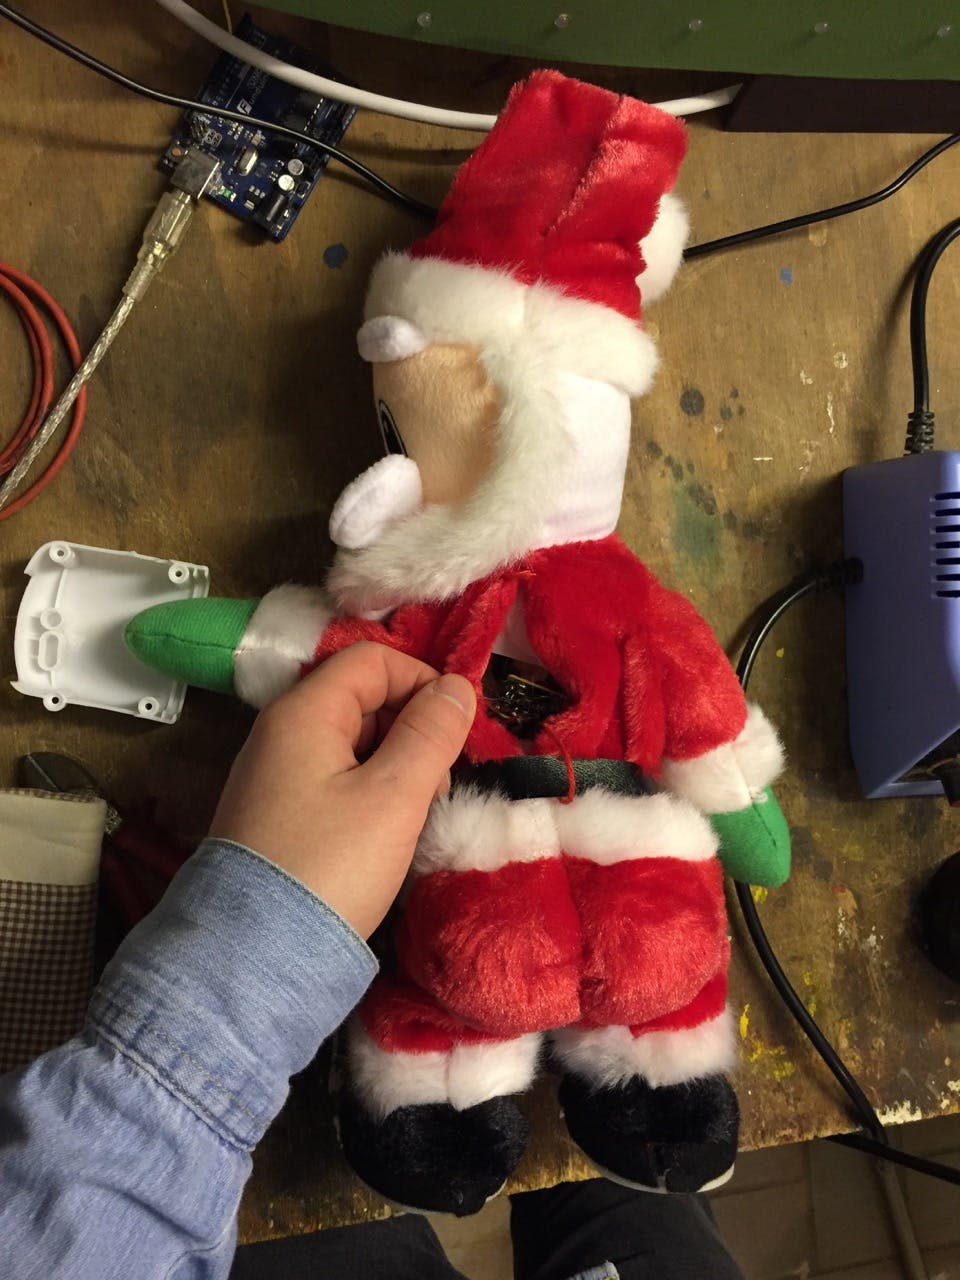 Connecting wires to Santas µC and power supply. Poor guy.